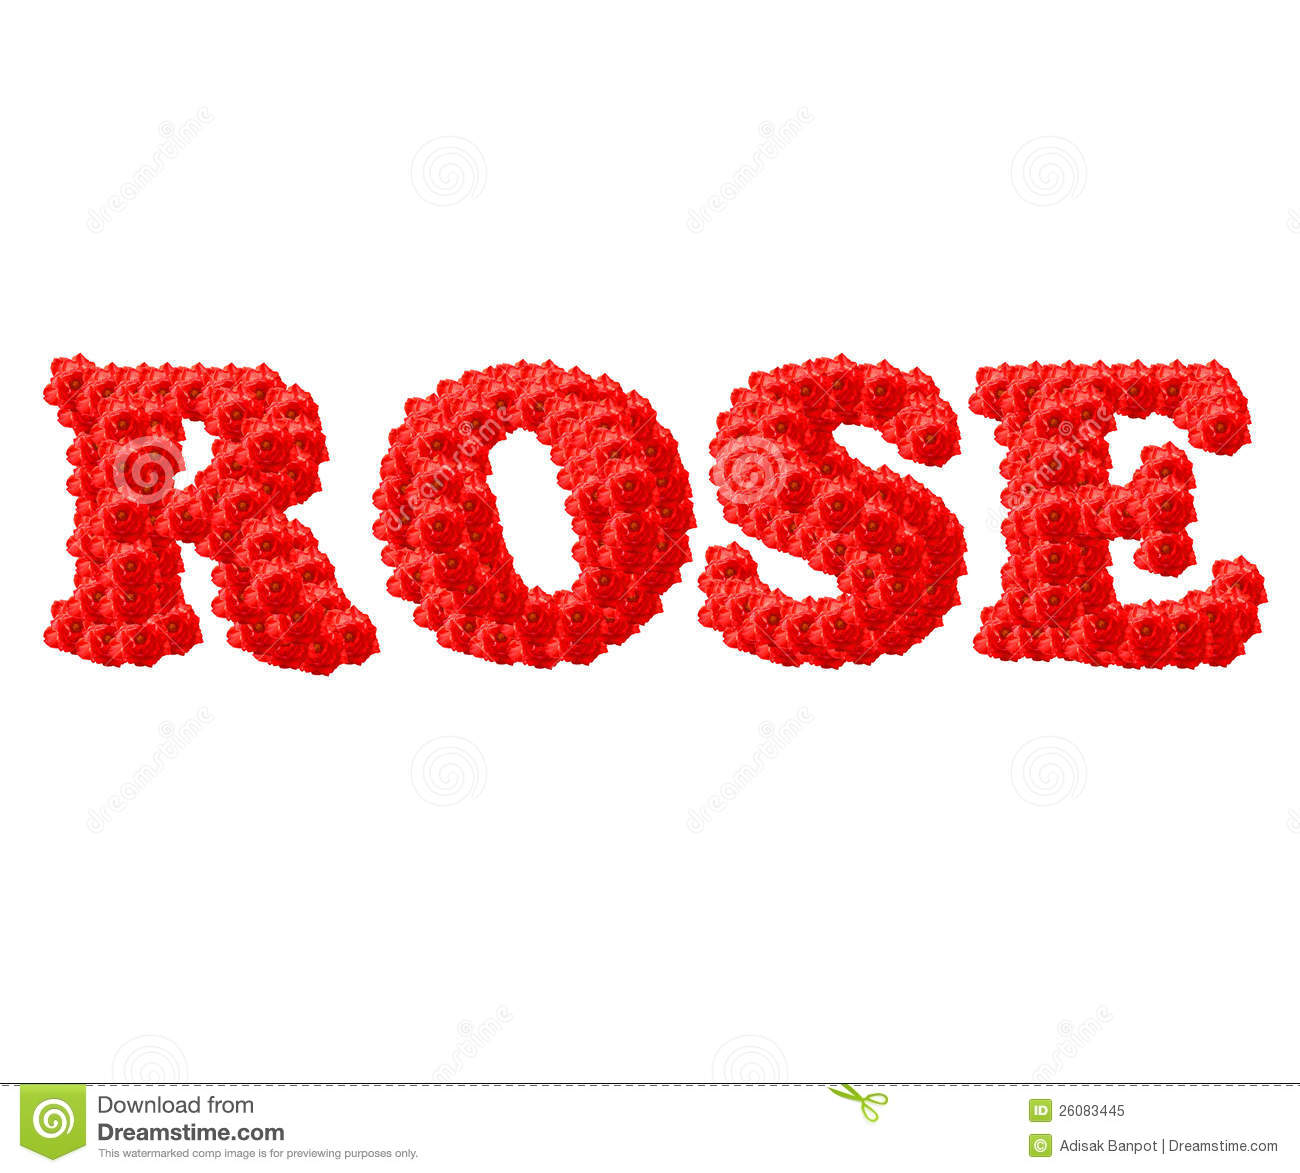 The Red Rose Text Royalty Free Stock Photo - Image: 26083445